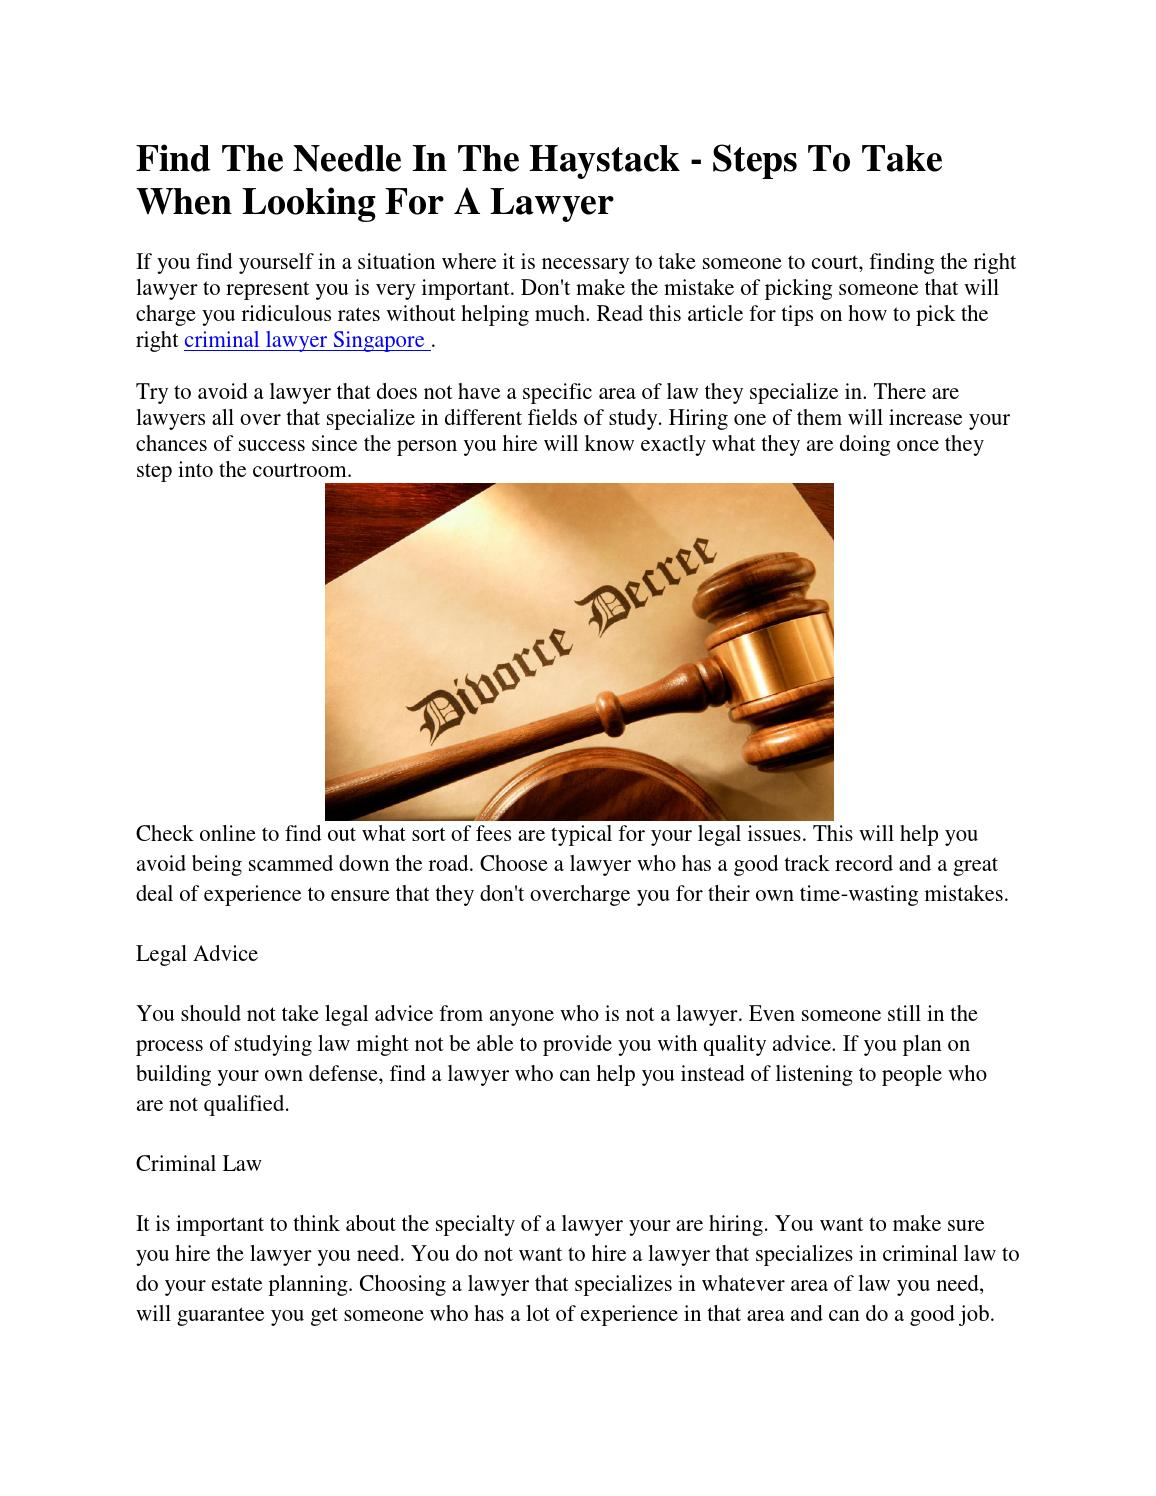 Legal counsel singapore by singaporelawfirm issuu solutioingenieria Images